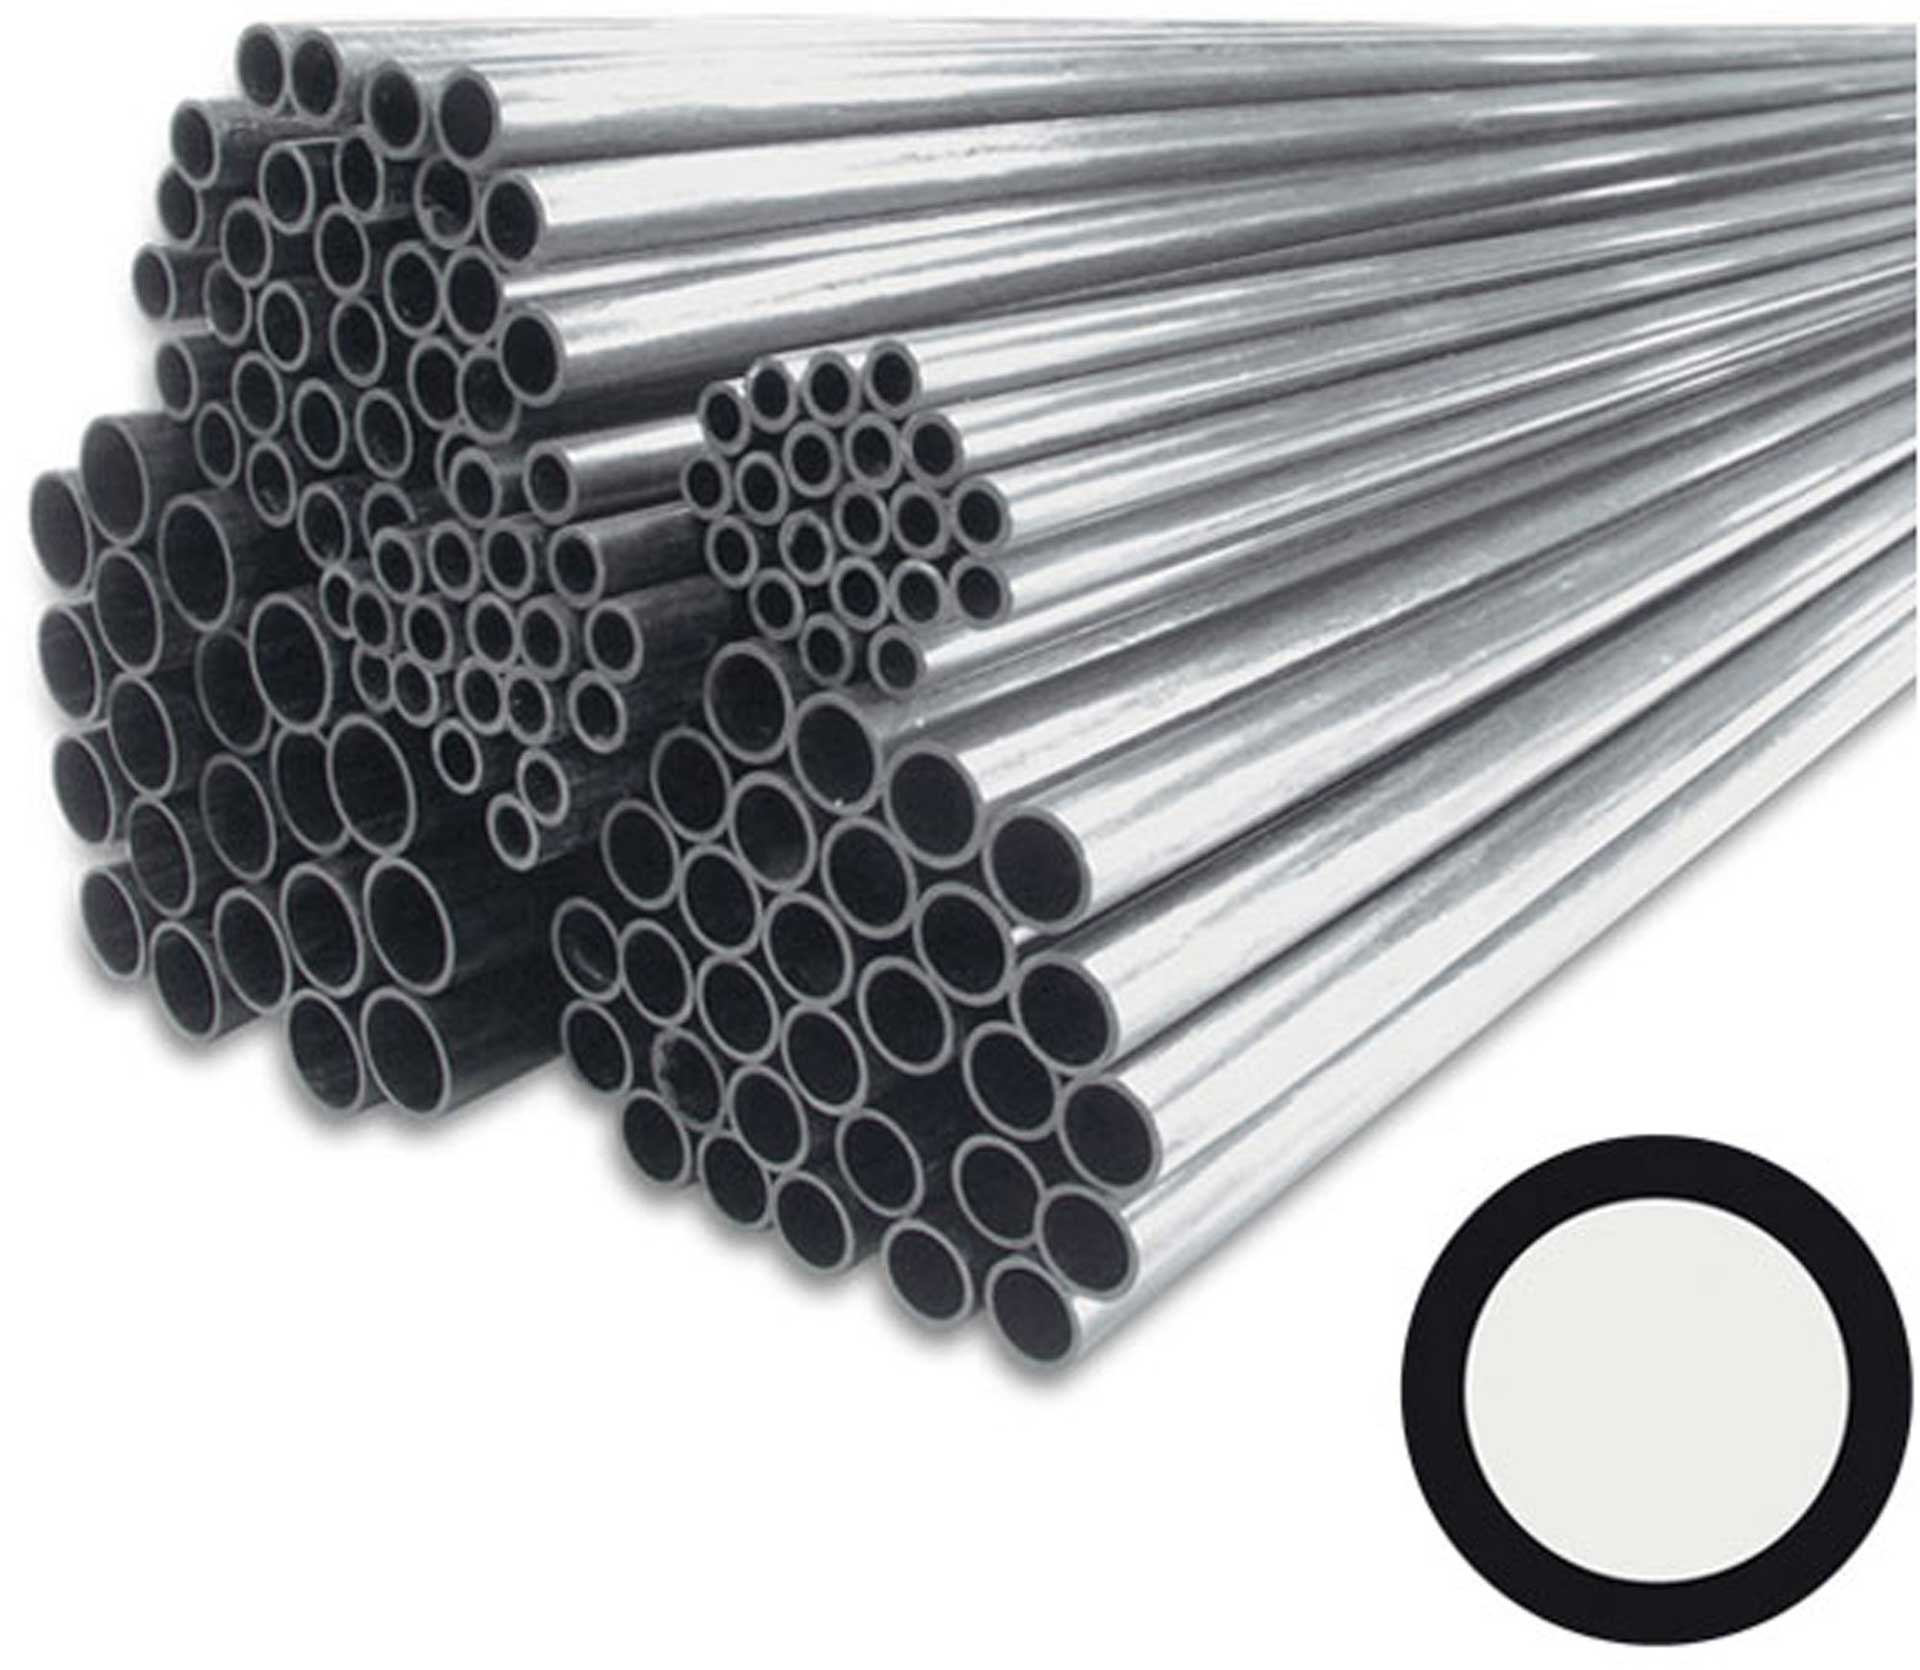 R&G CARBON FIBER ROUND TUBE PULTRUDED 4/3X1000MM